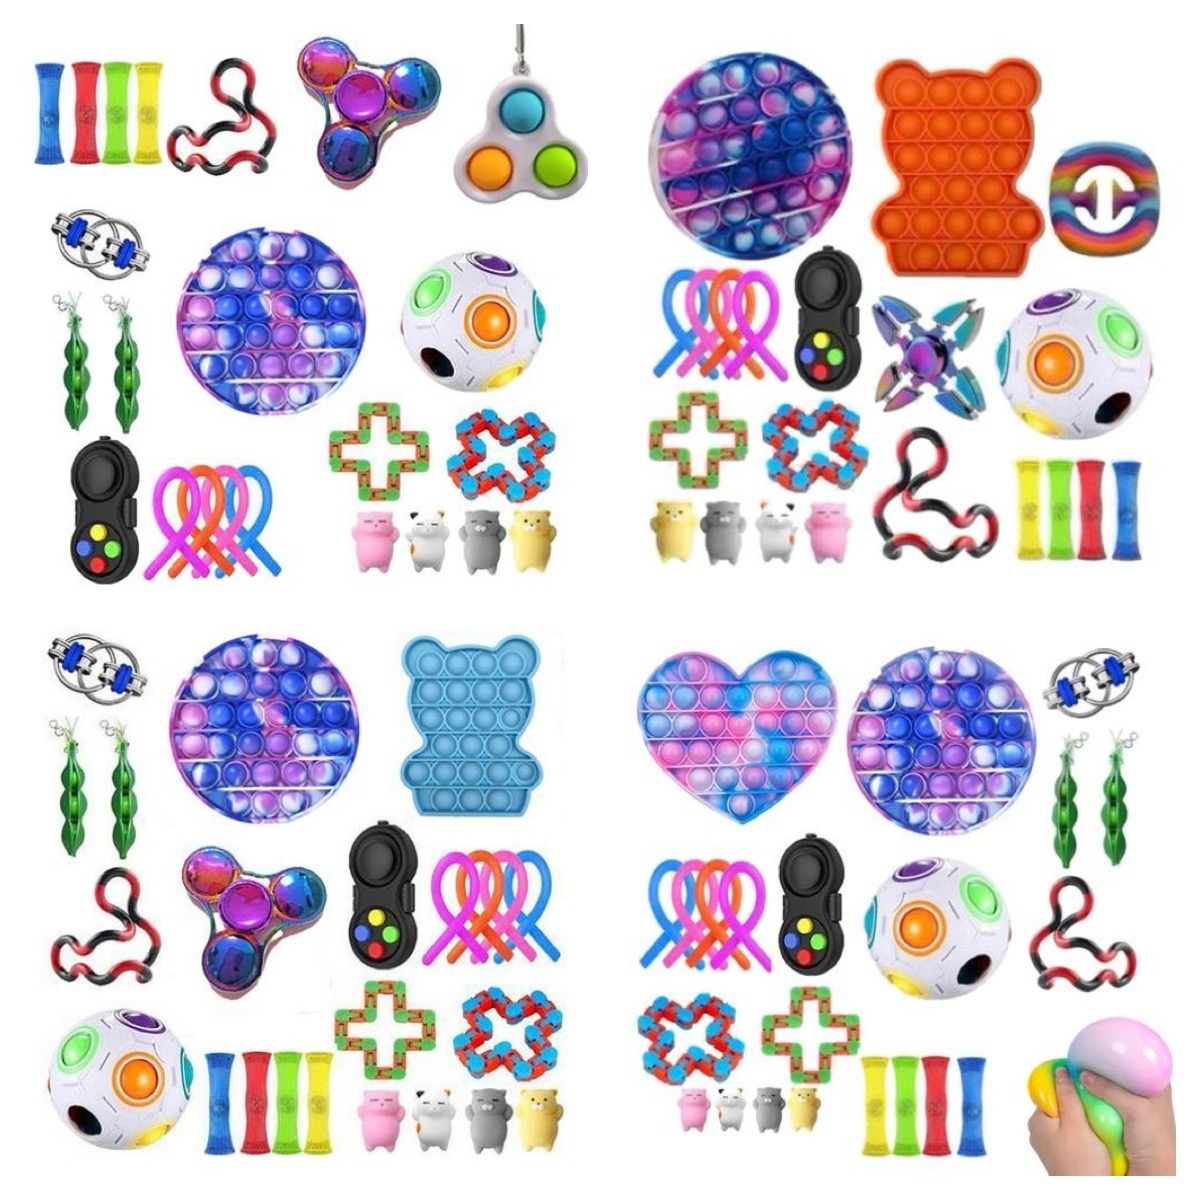 Toys-Pack It-Fidget-Toys-Set Relief-Antistress-Toys Marble Sensory-Stress Strings Pop